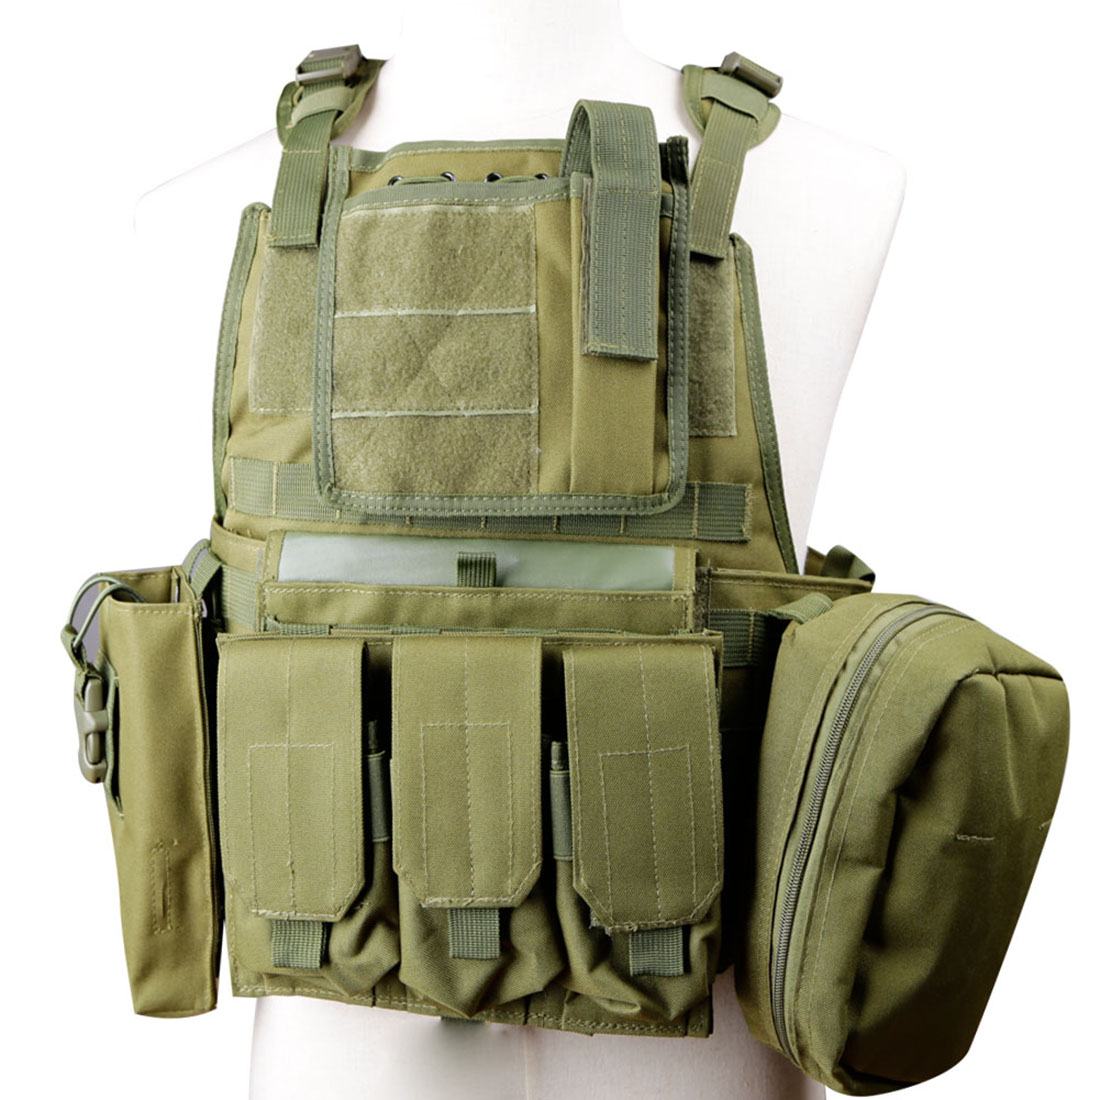 Molle Military Quick Release Tactical Vest Adjustable Outdoor Airsoft Paintball Protective Vest Hunting Shooting Safety Vest